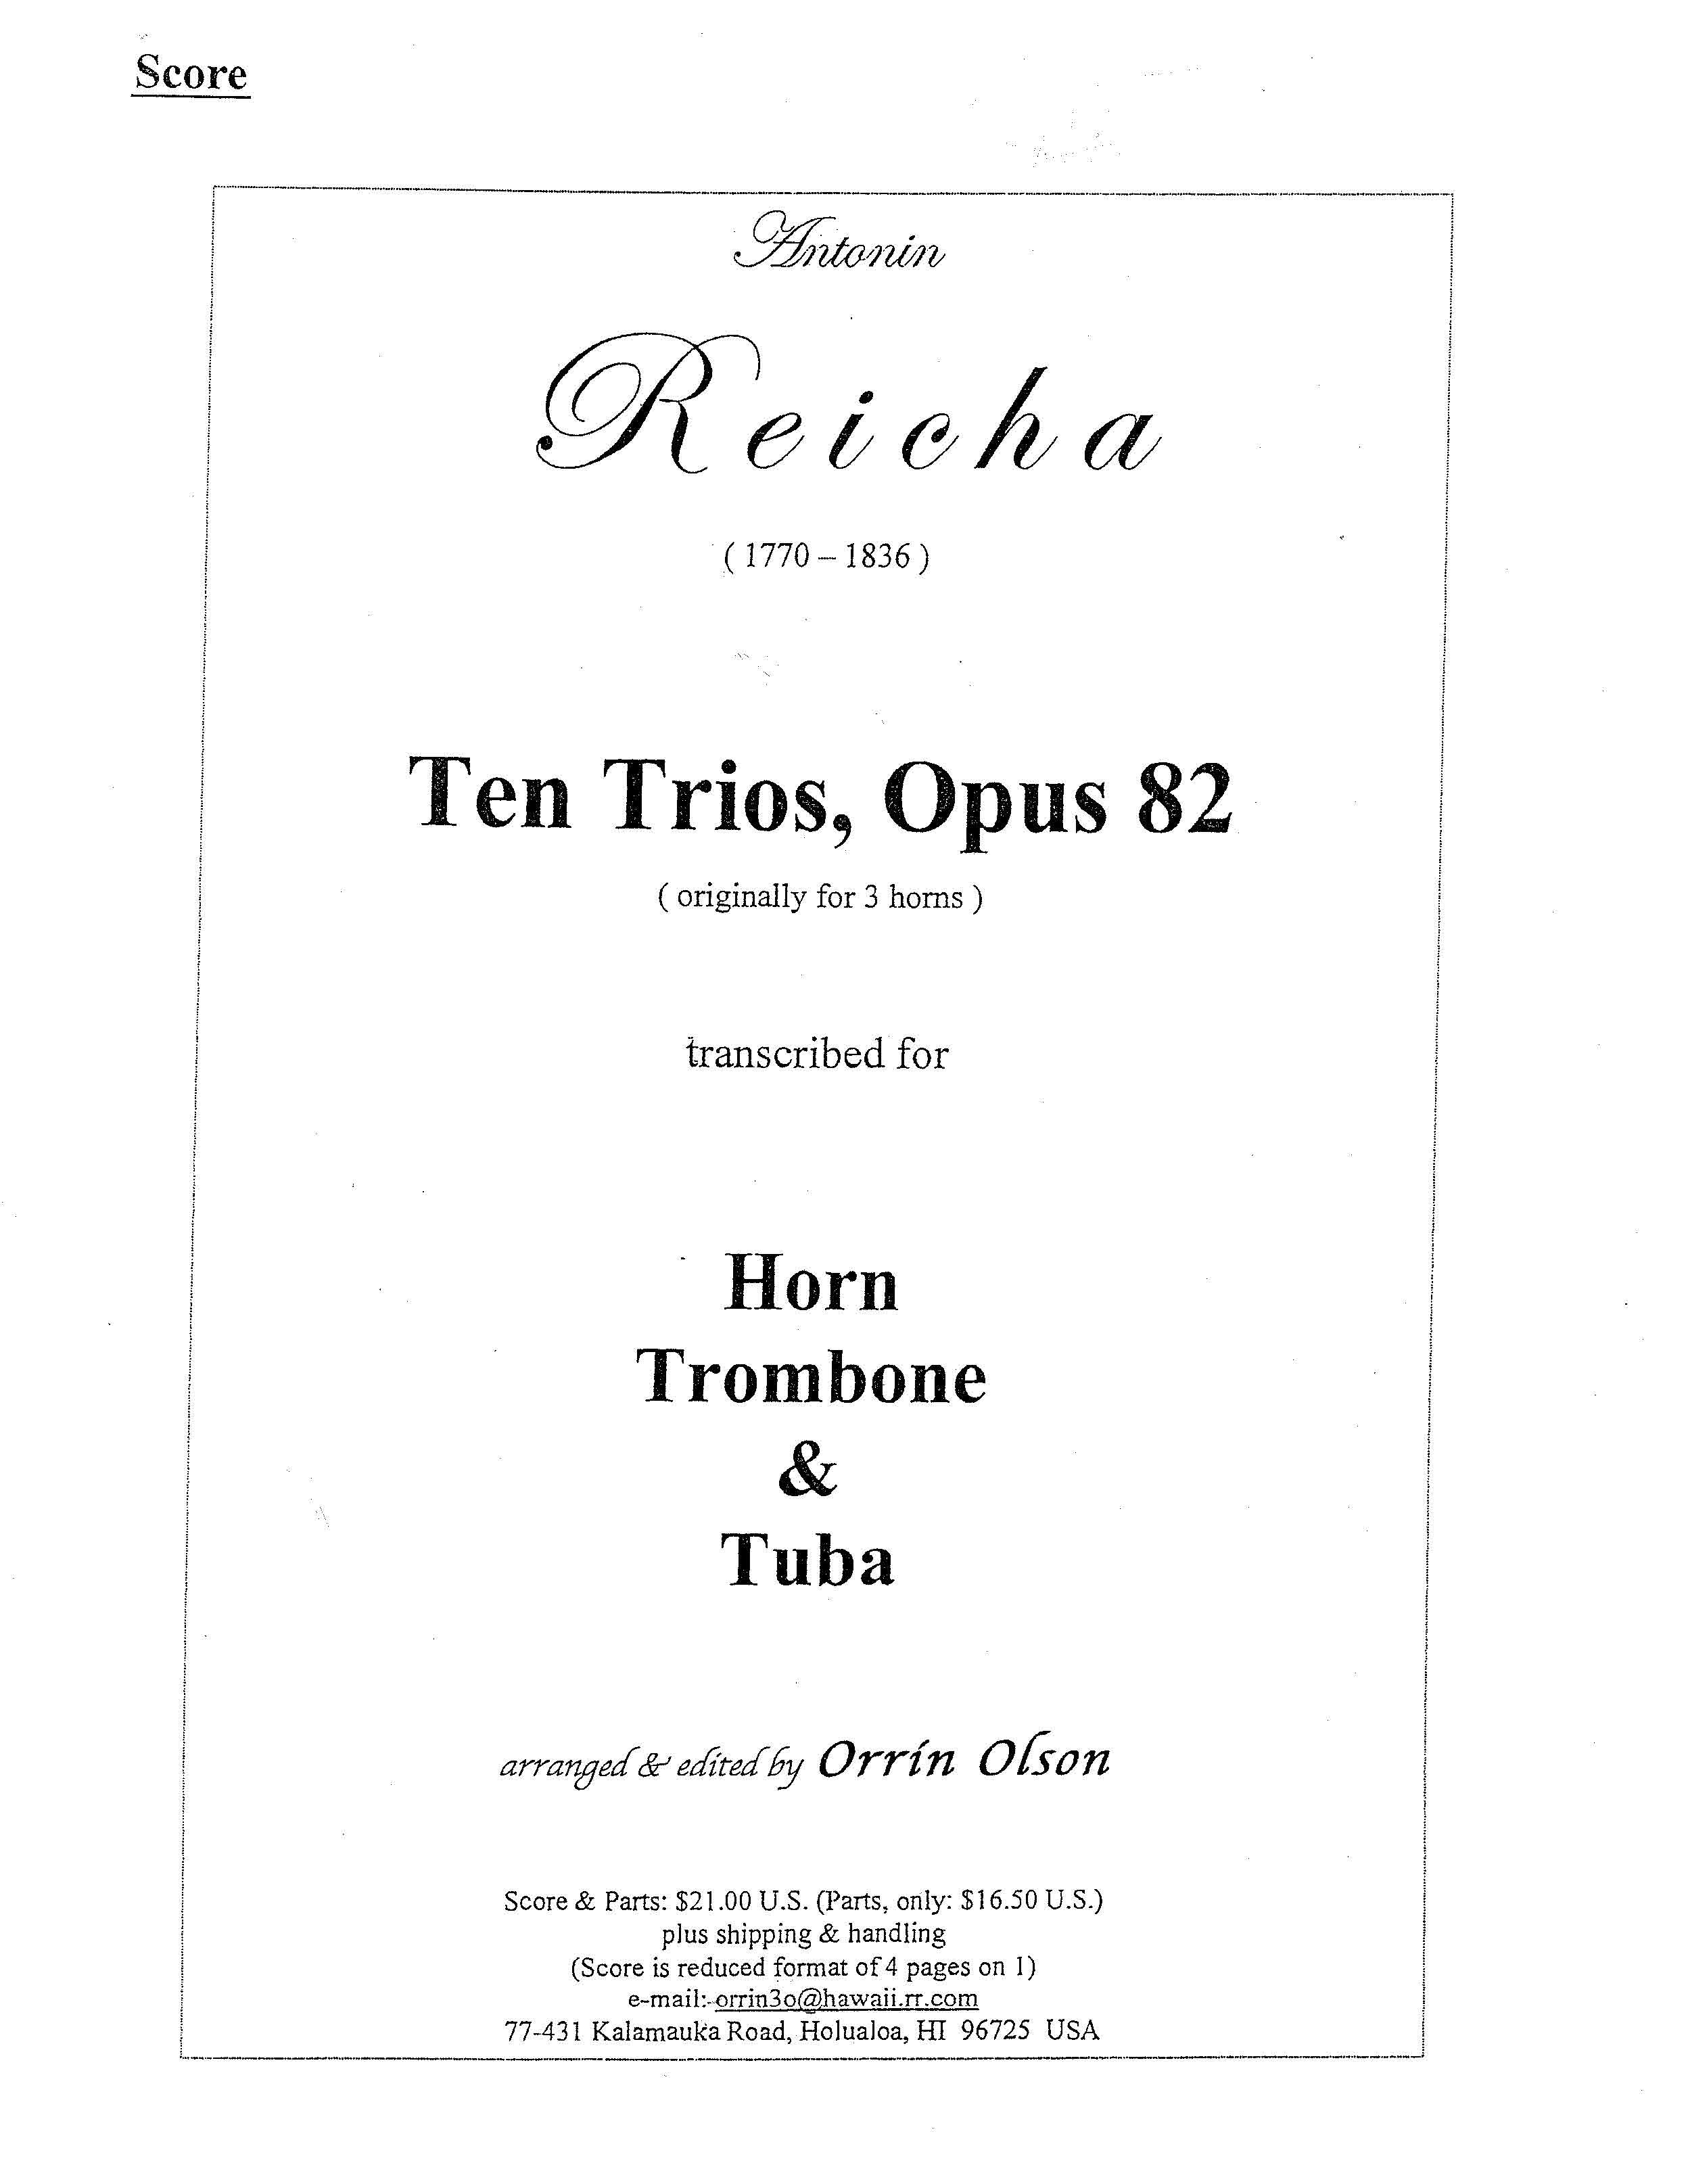 Ten Trios, Opus 82 for Horn, Trombone, and Tuba by Antonin Reicha